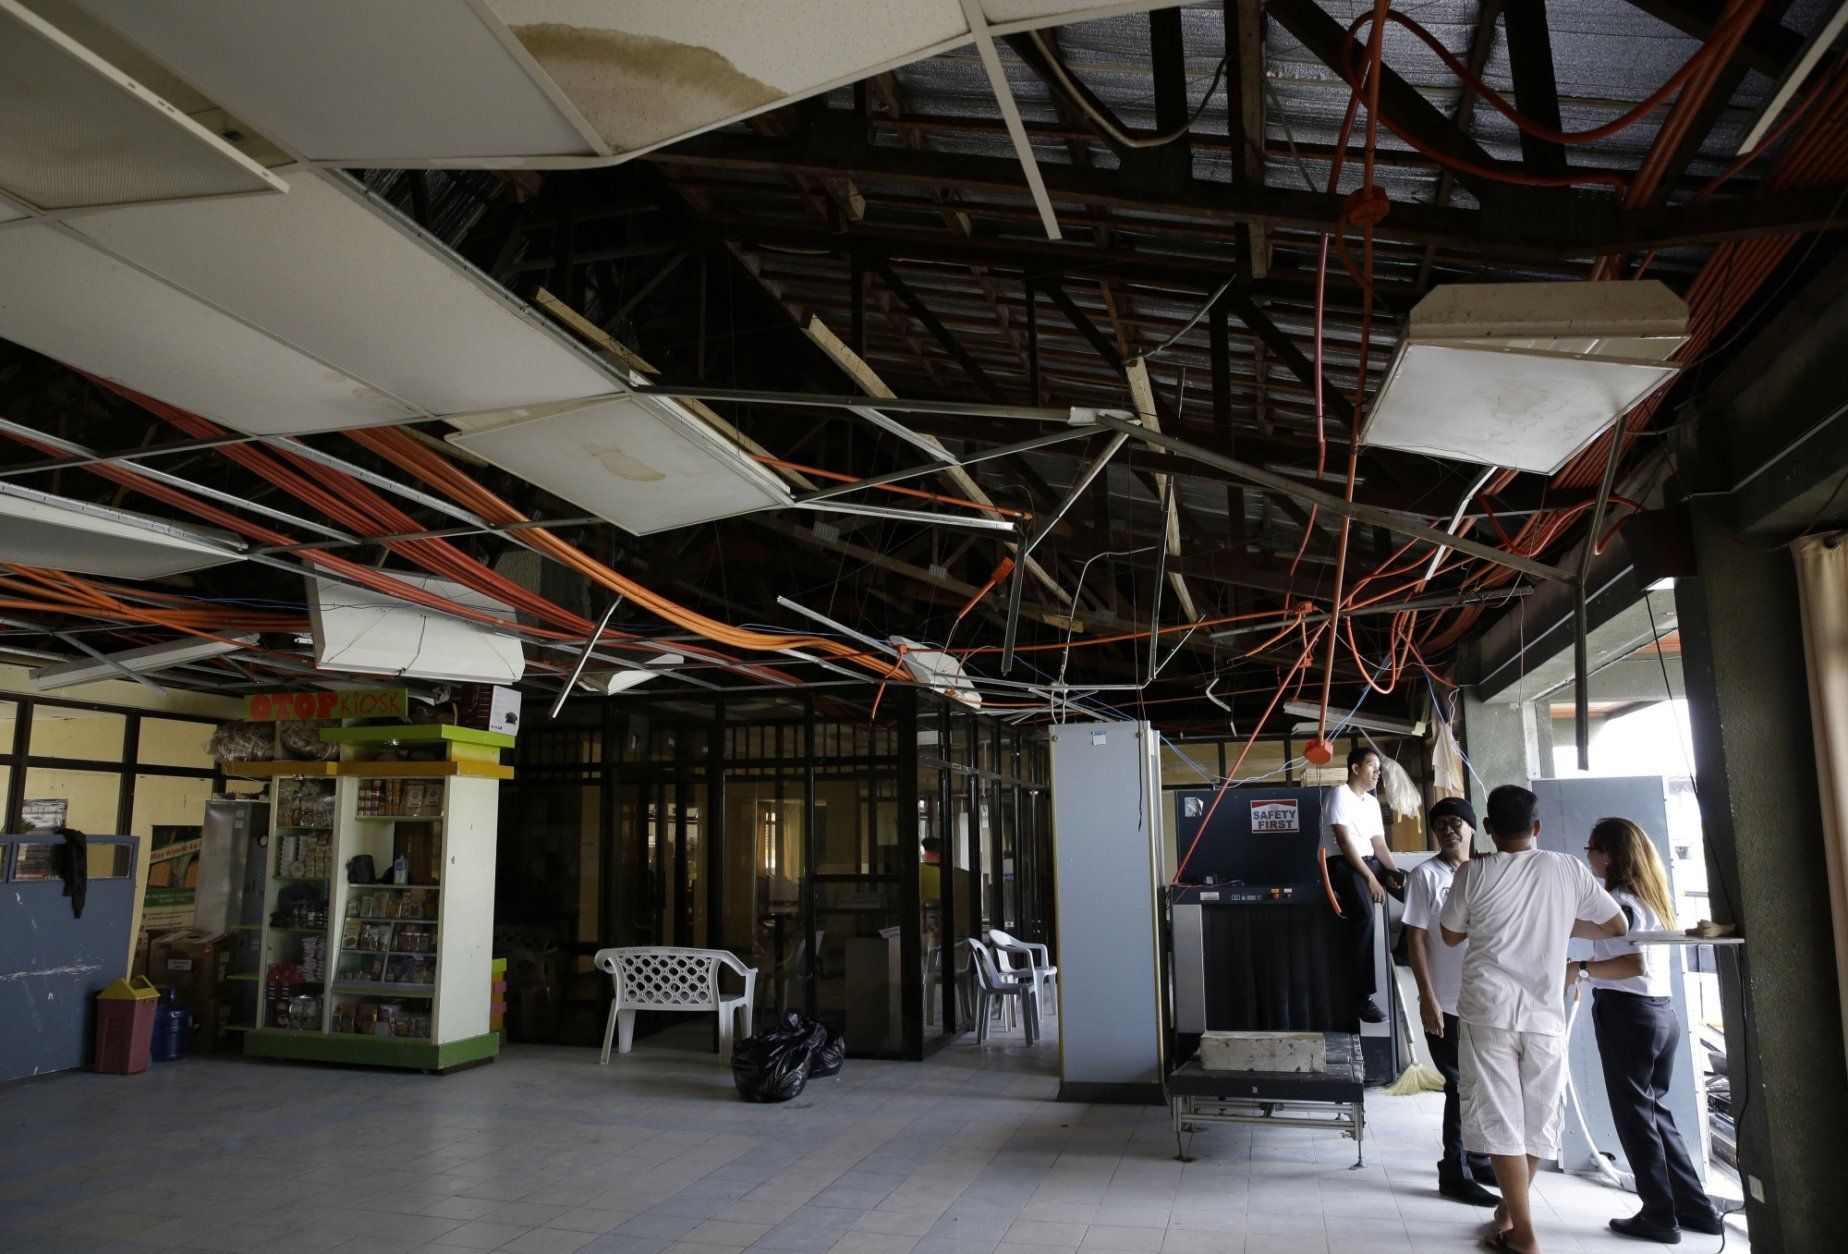 Workers wait inside the terminal of Tuguegarao's airport damaged due to strong winds from Typhoon Mangkhut in Cagayan province, northeastern Philippines on Sunday, Sept. 16, 2018. Typhoon Mangkhut roared toward densely populated Hong Kong and southern China on Sunday after ravaging across the northern Philippines with ferocious winds and heavy rain causing landslides and collapsed houses. (AP Photo/Aaron Favila)